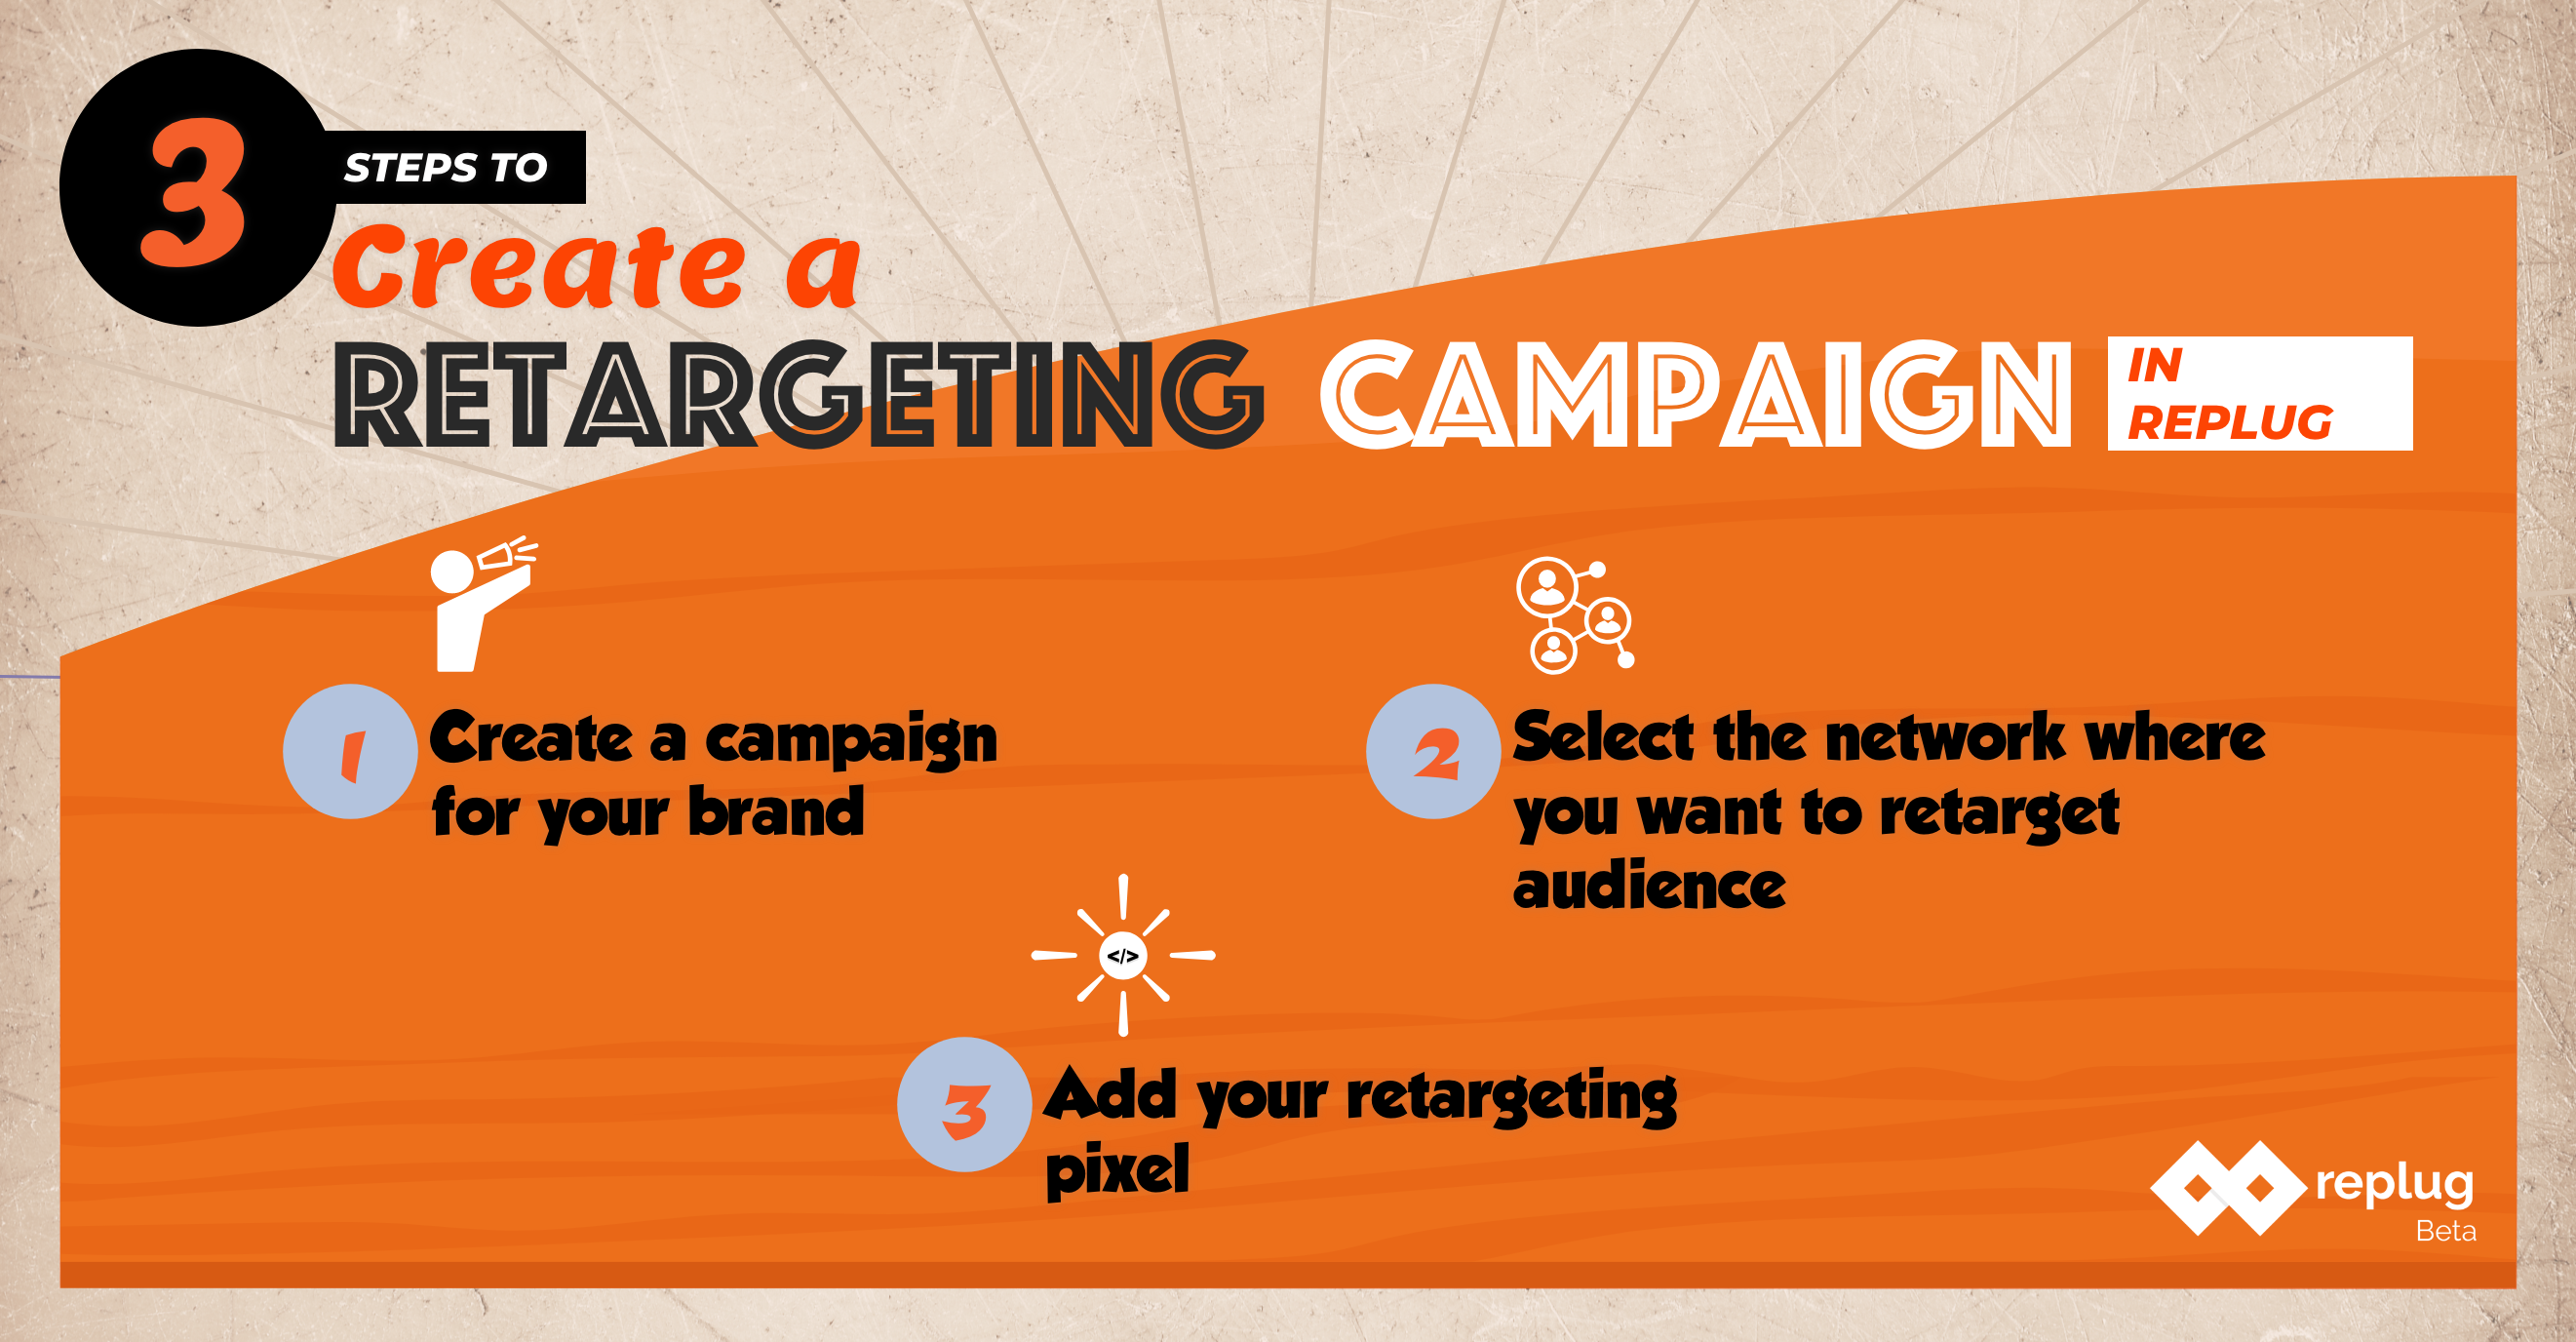 Retargeting in Replug